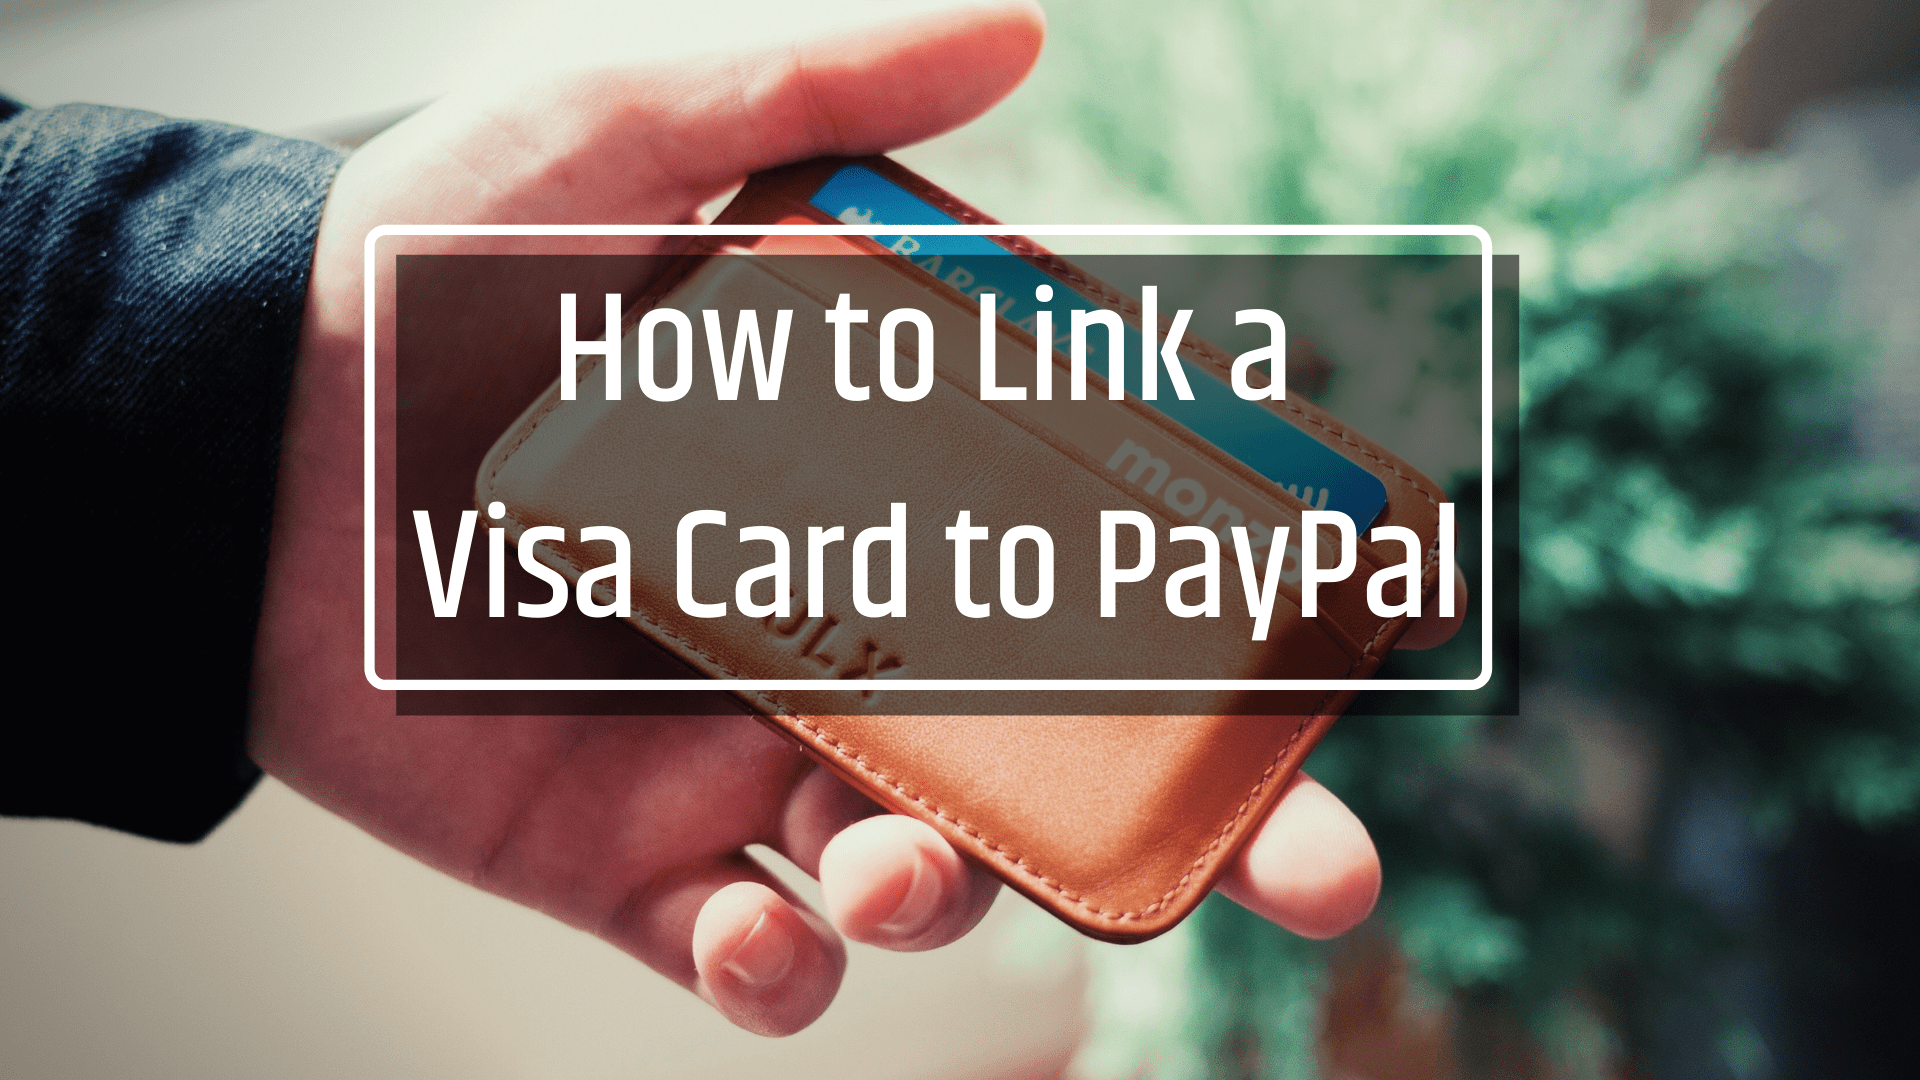 How to link CIMB Visa Card to Paypal